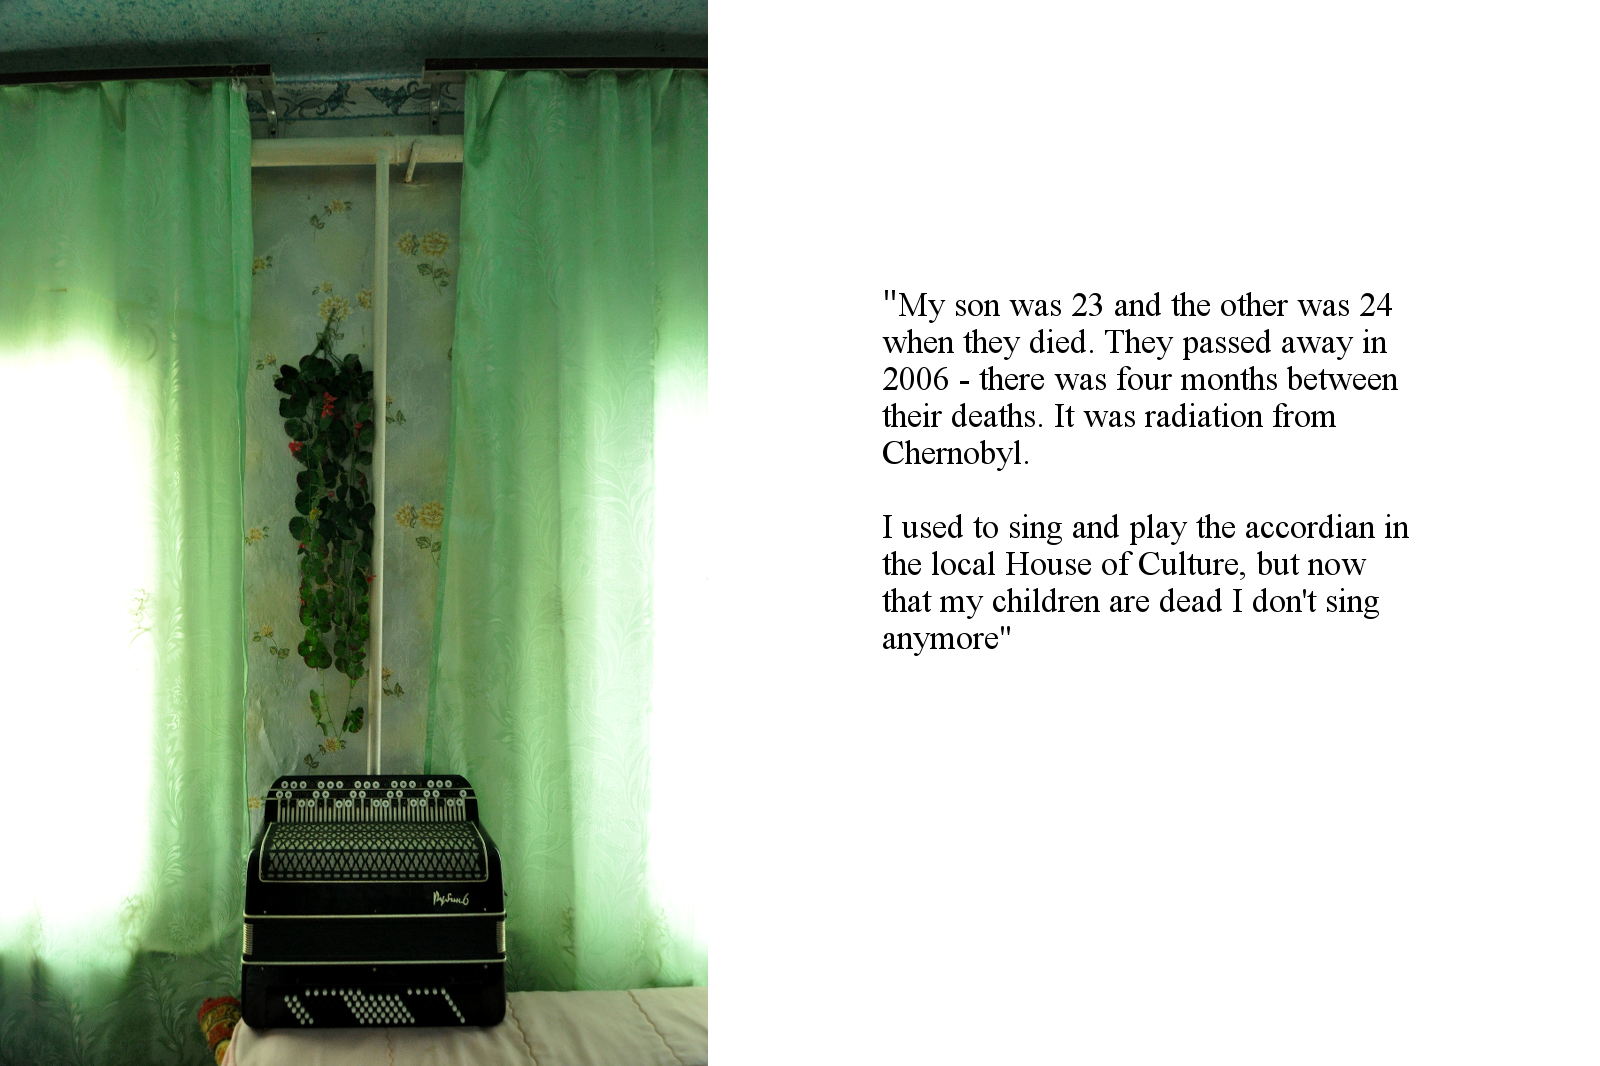 An accordion photographed in the home of a bereaved mother near the Chernobyl Exclusion Zone